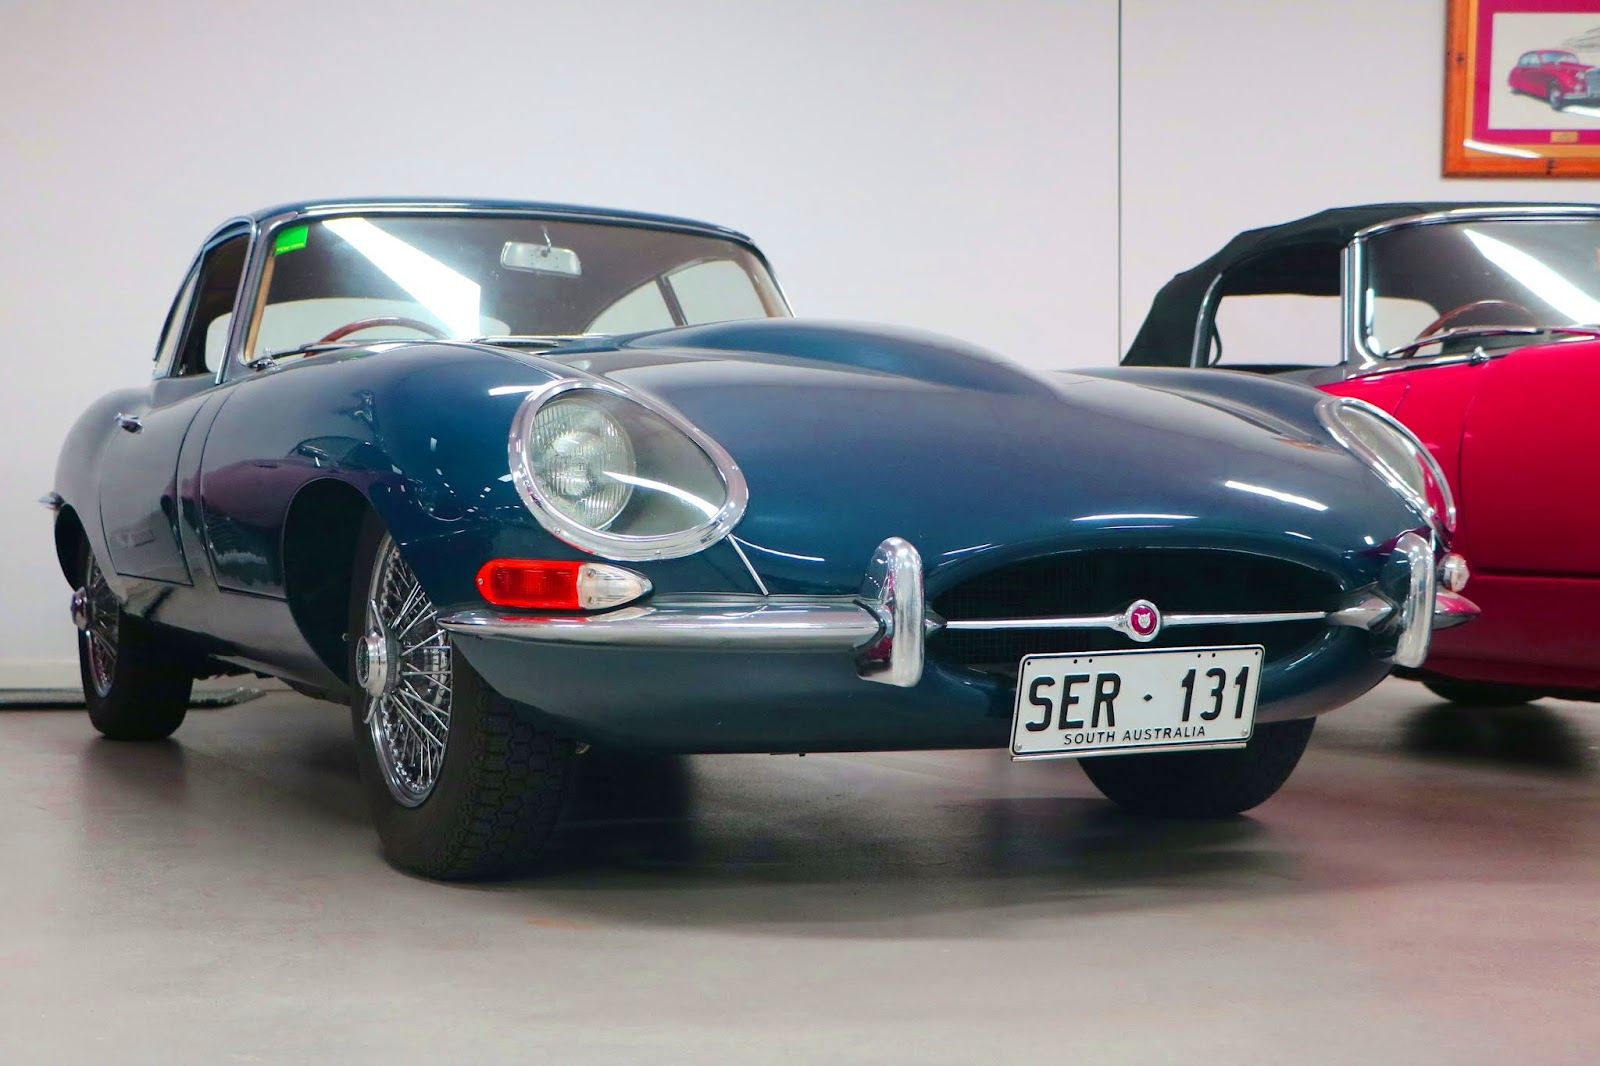 Carl_Lindner_Collection - 1966 Jaguar E-Type Series I Coupe 05.jpg